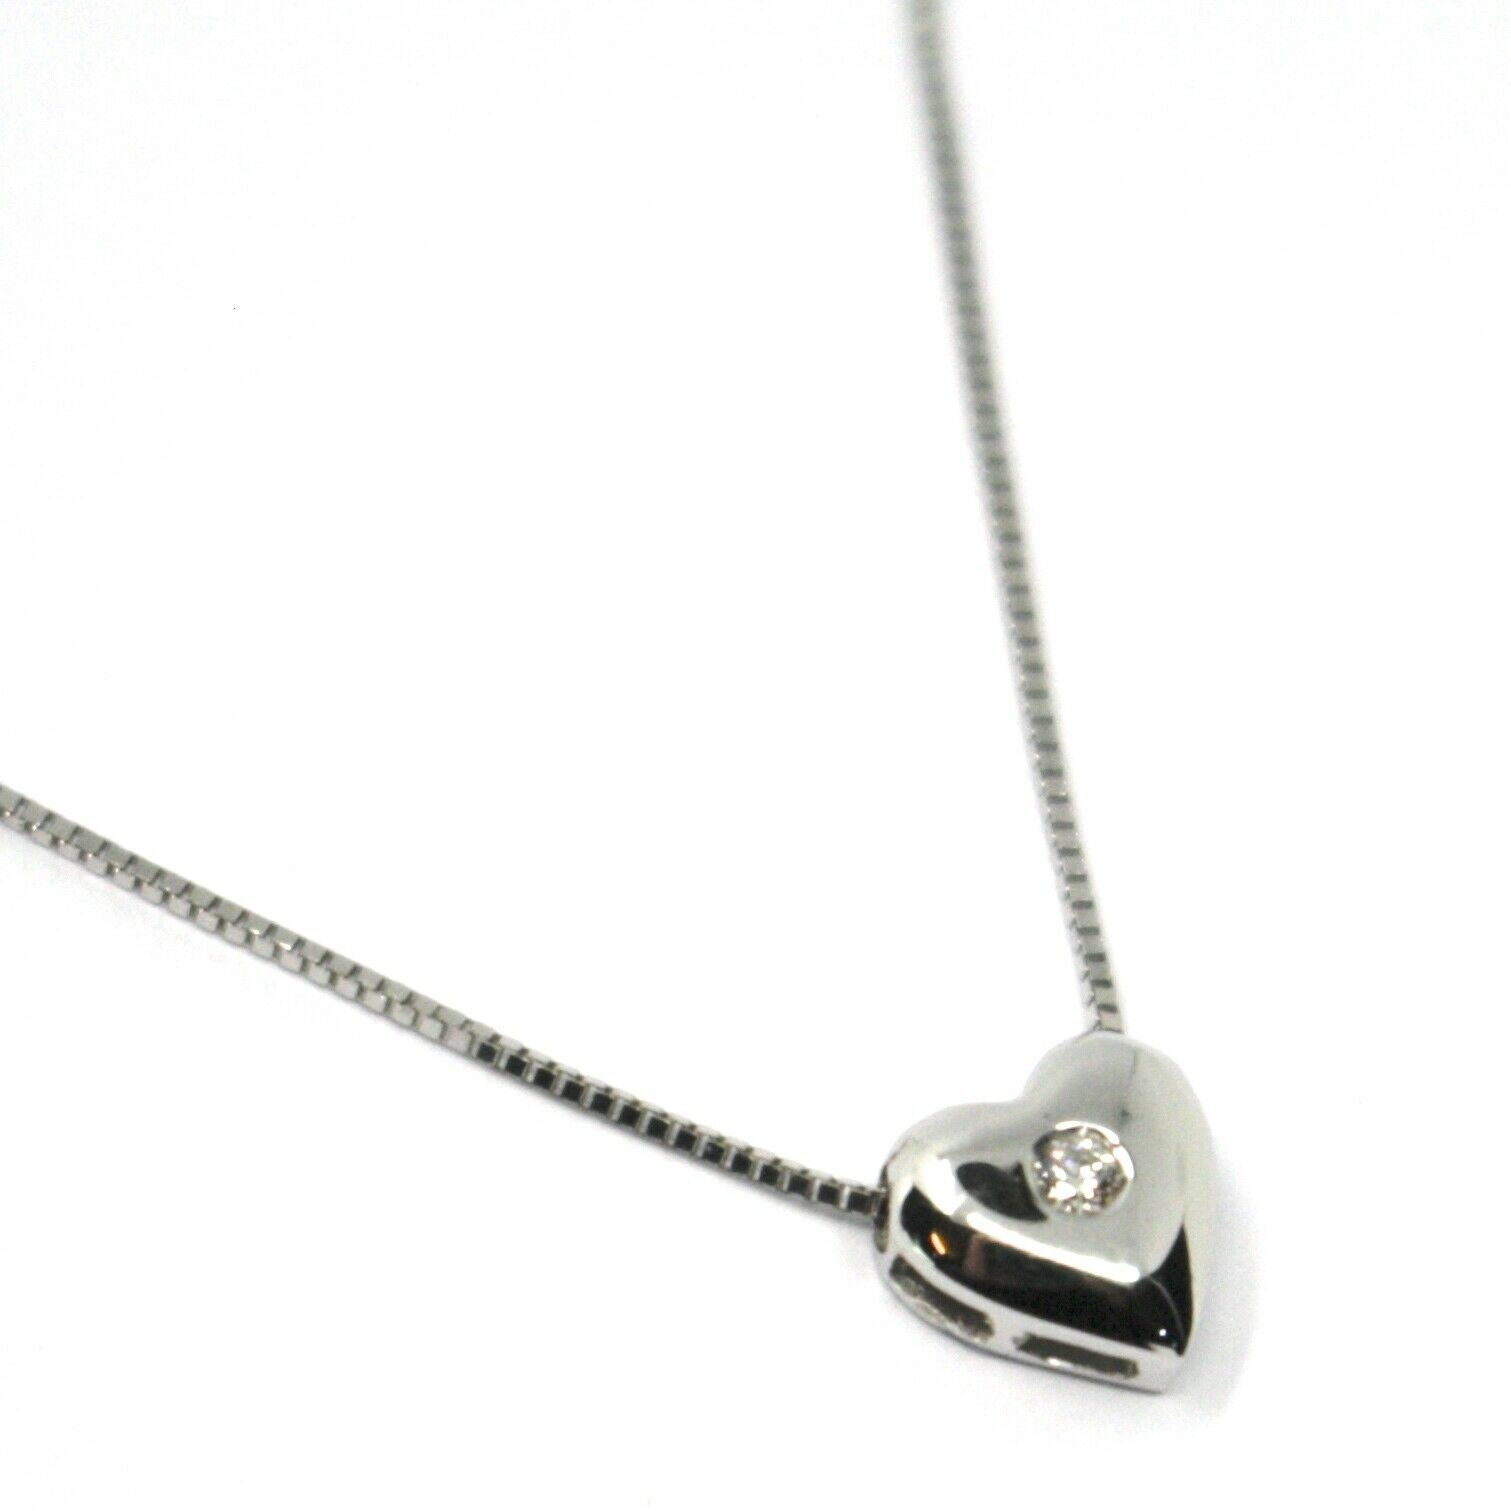 18K WHITE GOLD NECKLACE, MINI HEART PENDANT WITH DIAMOND AND VENETIAN CHAIN